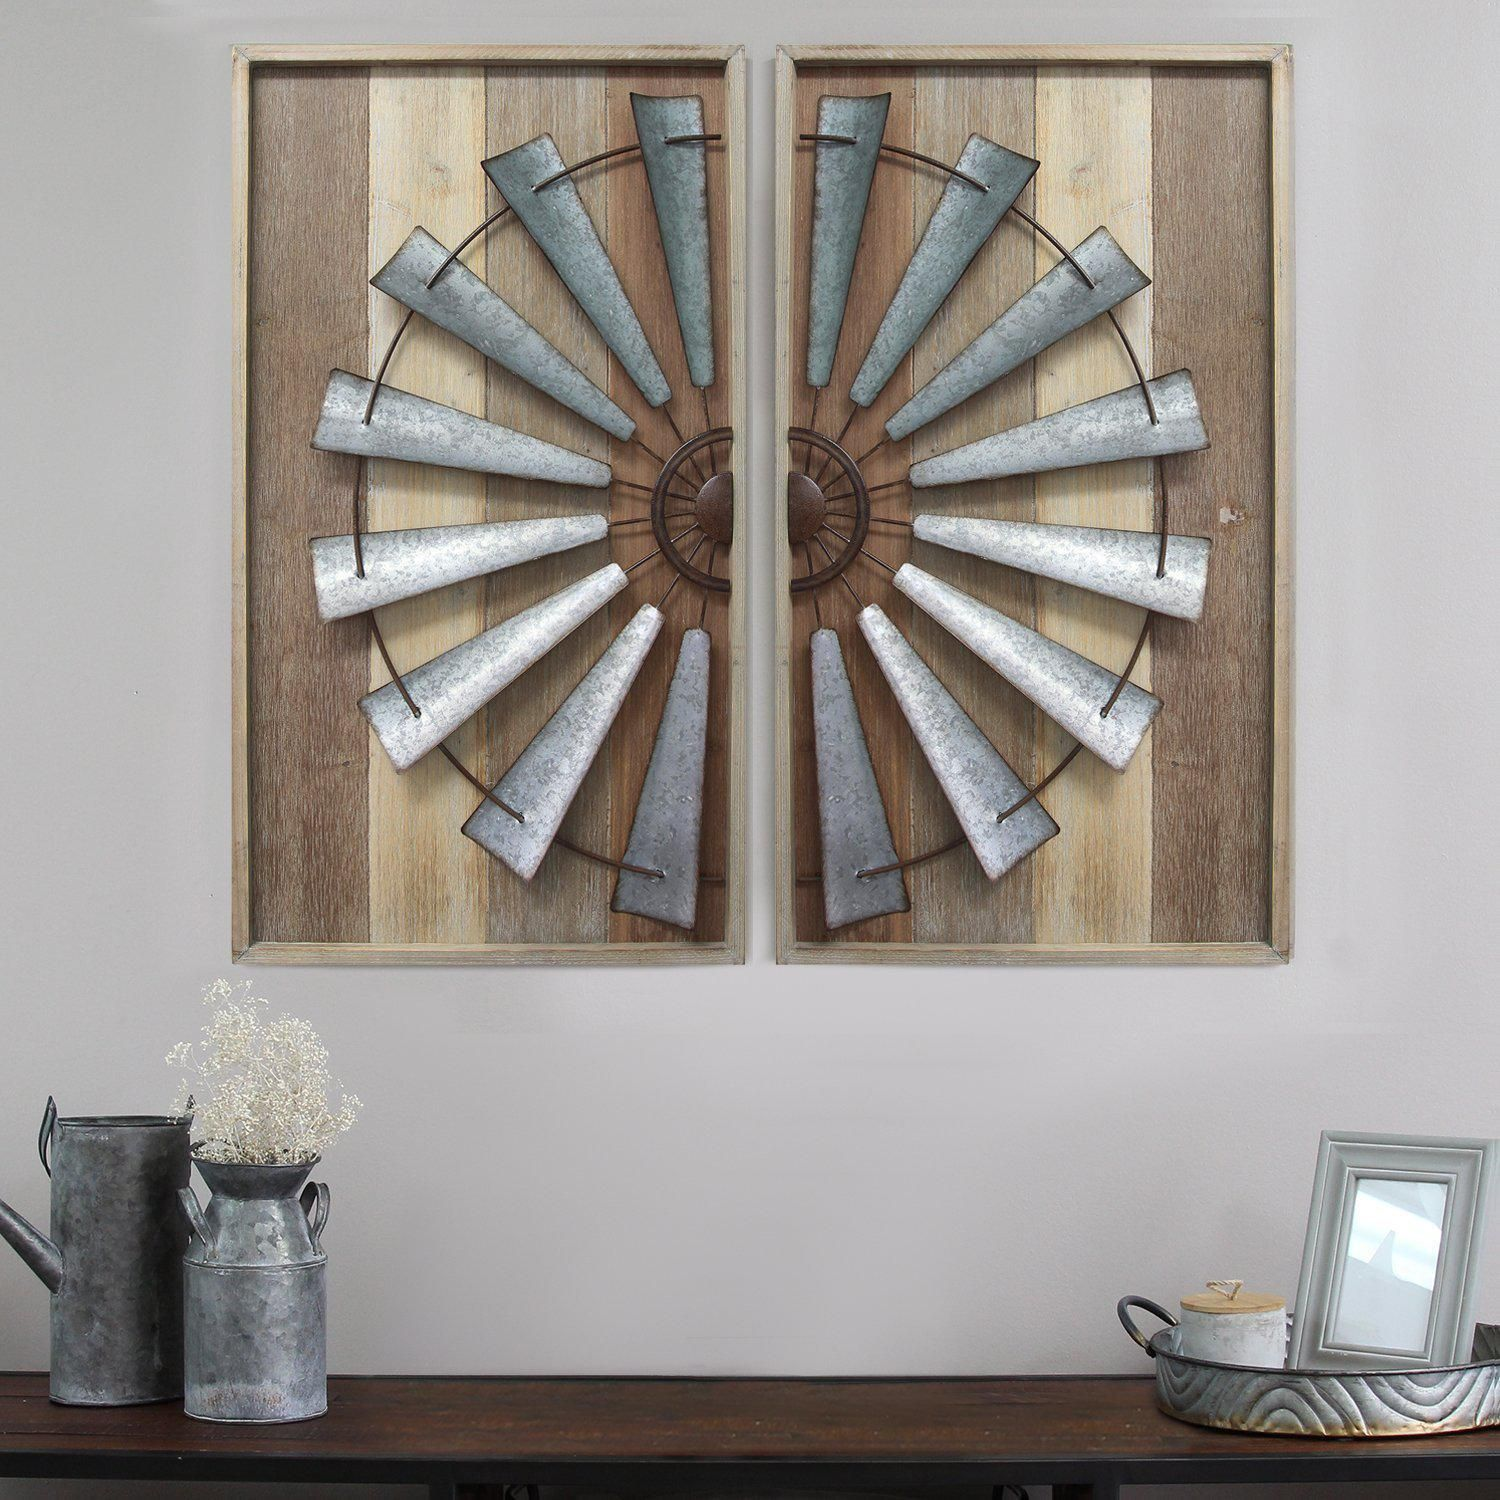 Stratton home decor windmill wall also arch in donna  pinterest arched rh